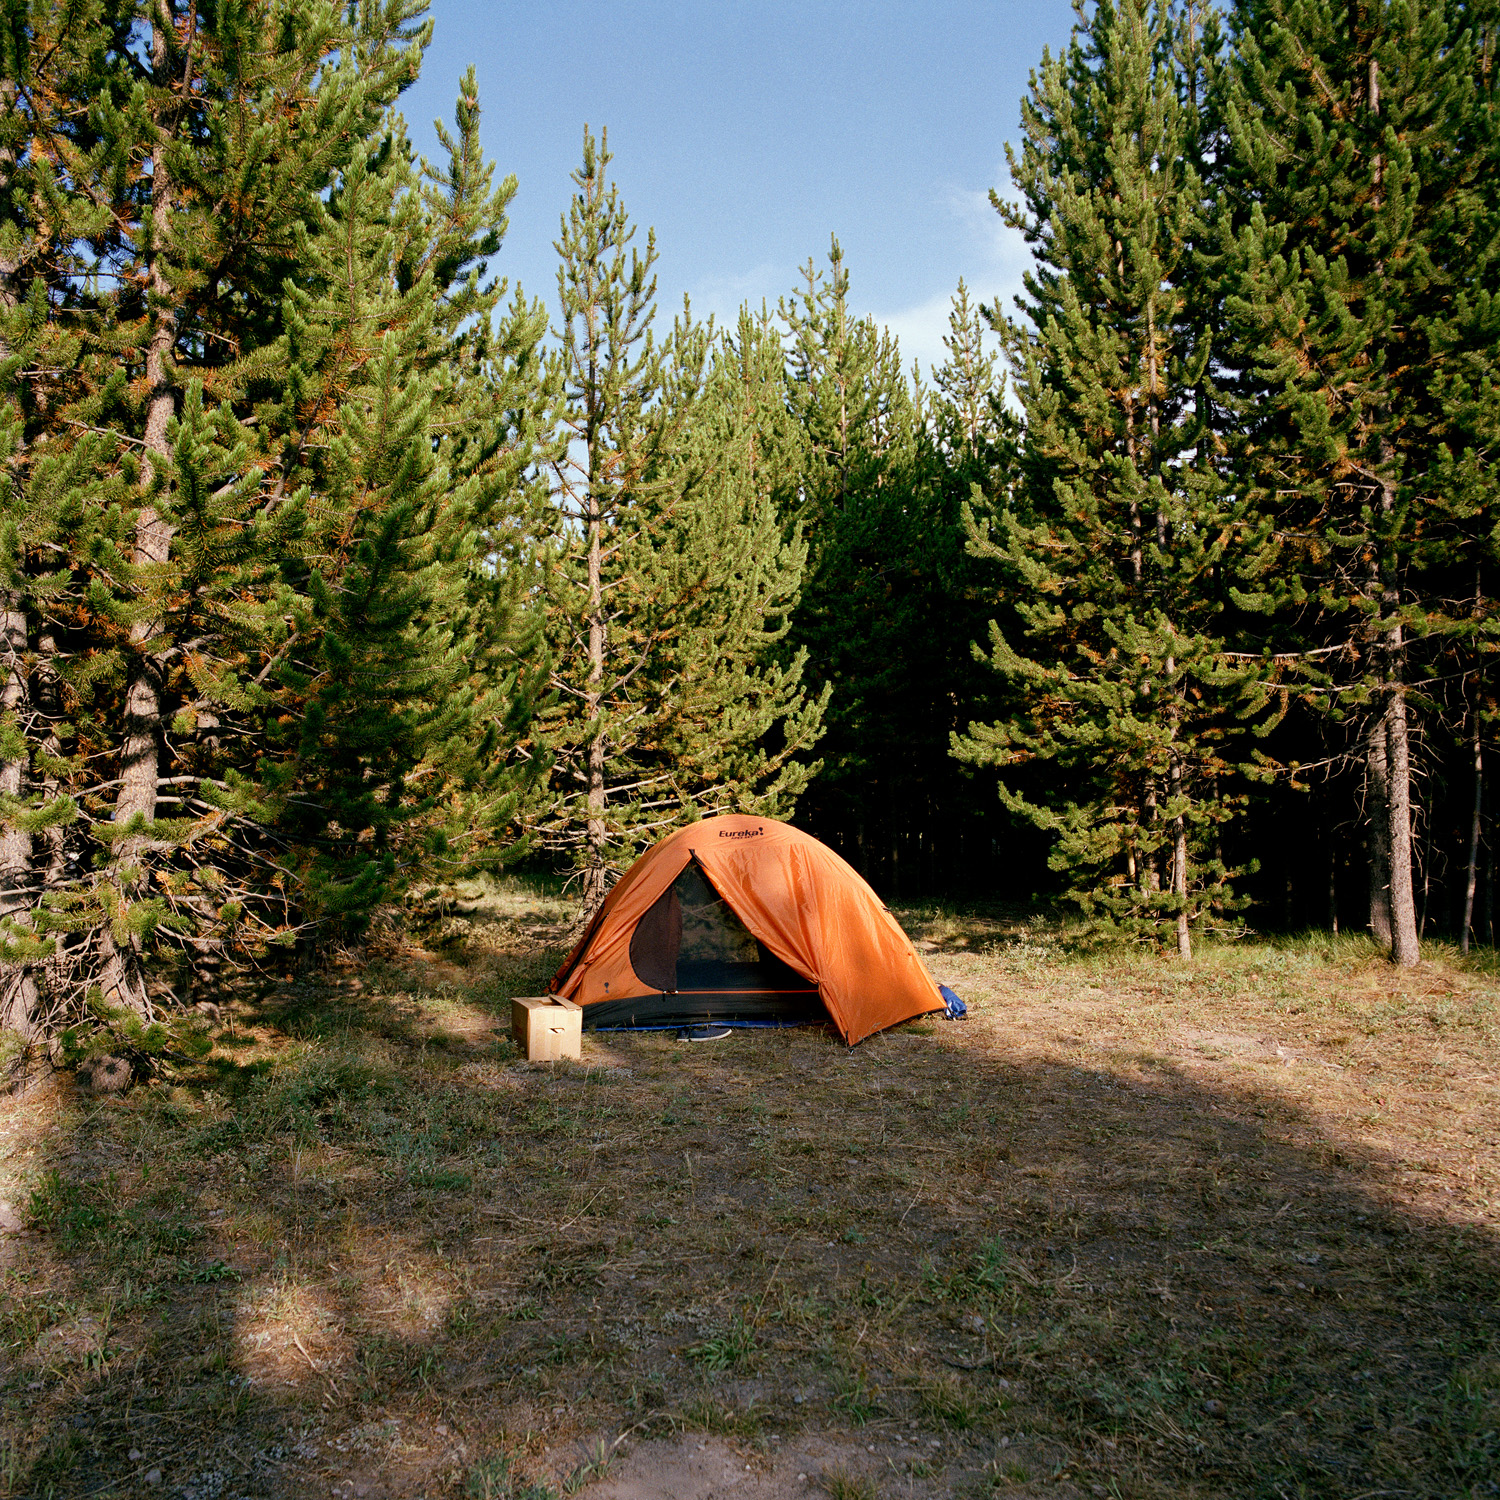 18_Parklife_Yellowstone_Tent.jpg